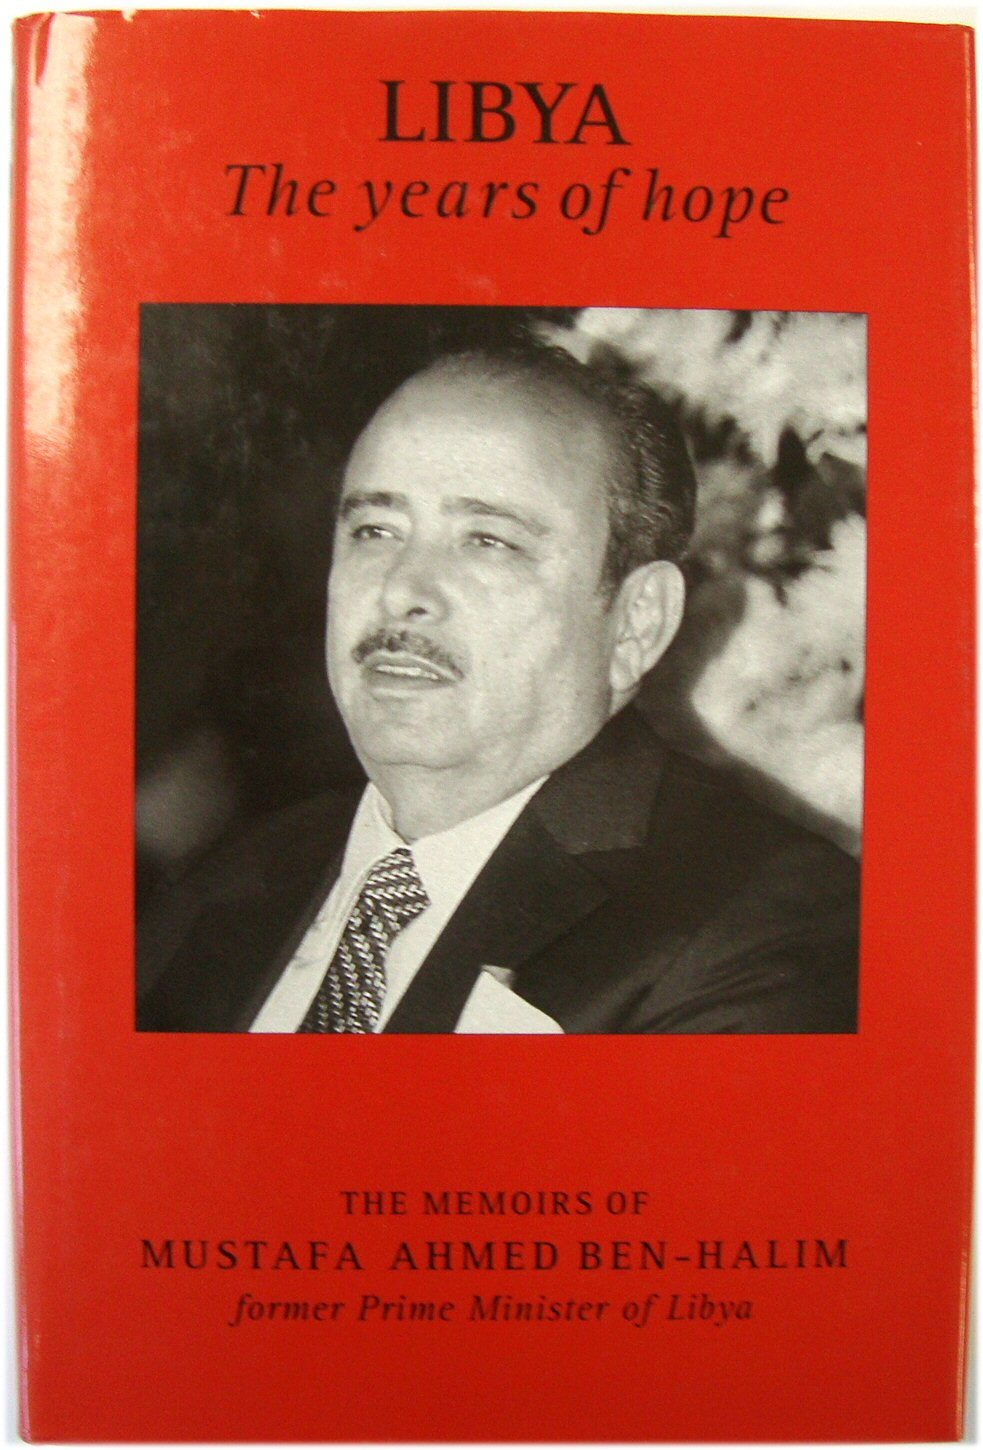 Image for Libya: The Years of Hope; The Memoirs of Mustafa Ahmed Ben-Halim, Former Prime Minister of Libya